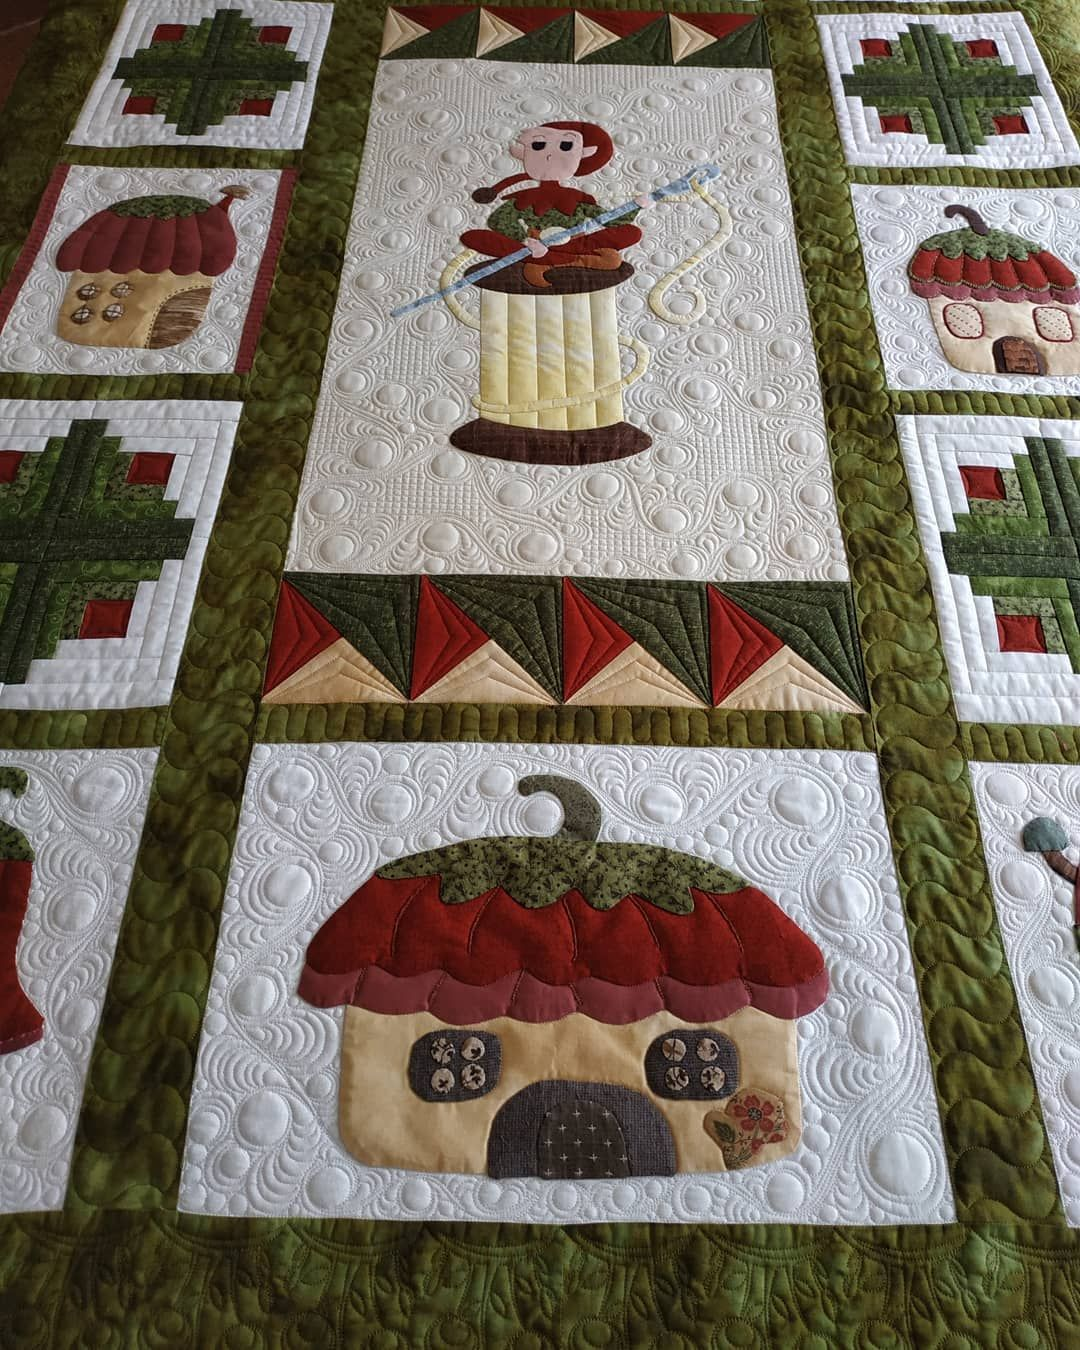 Ximo Navarro Sirera Quilt Stitching Textile Artists Quilts